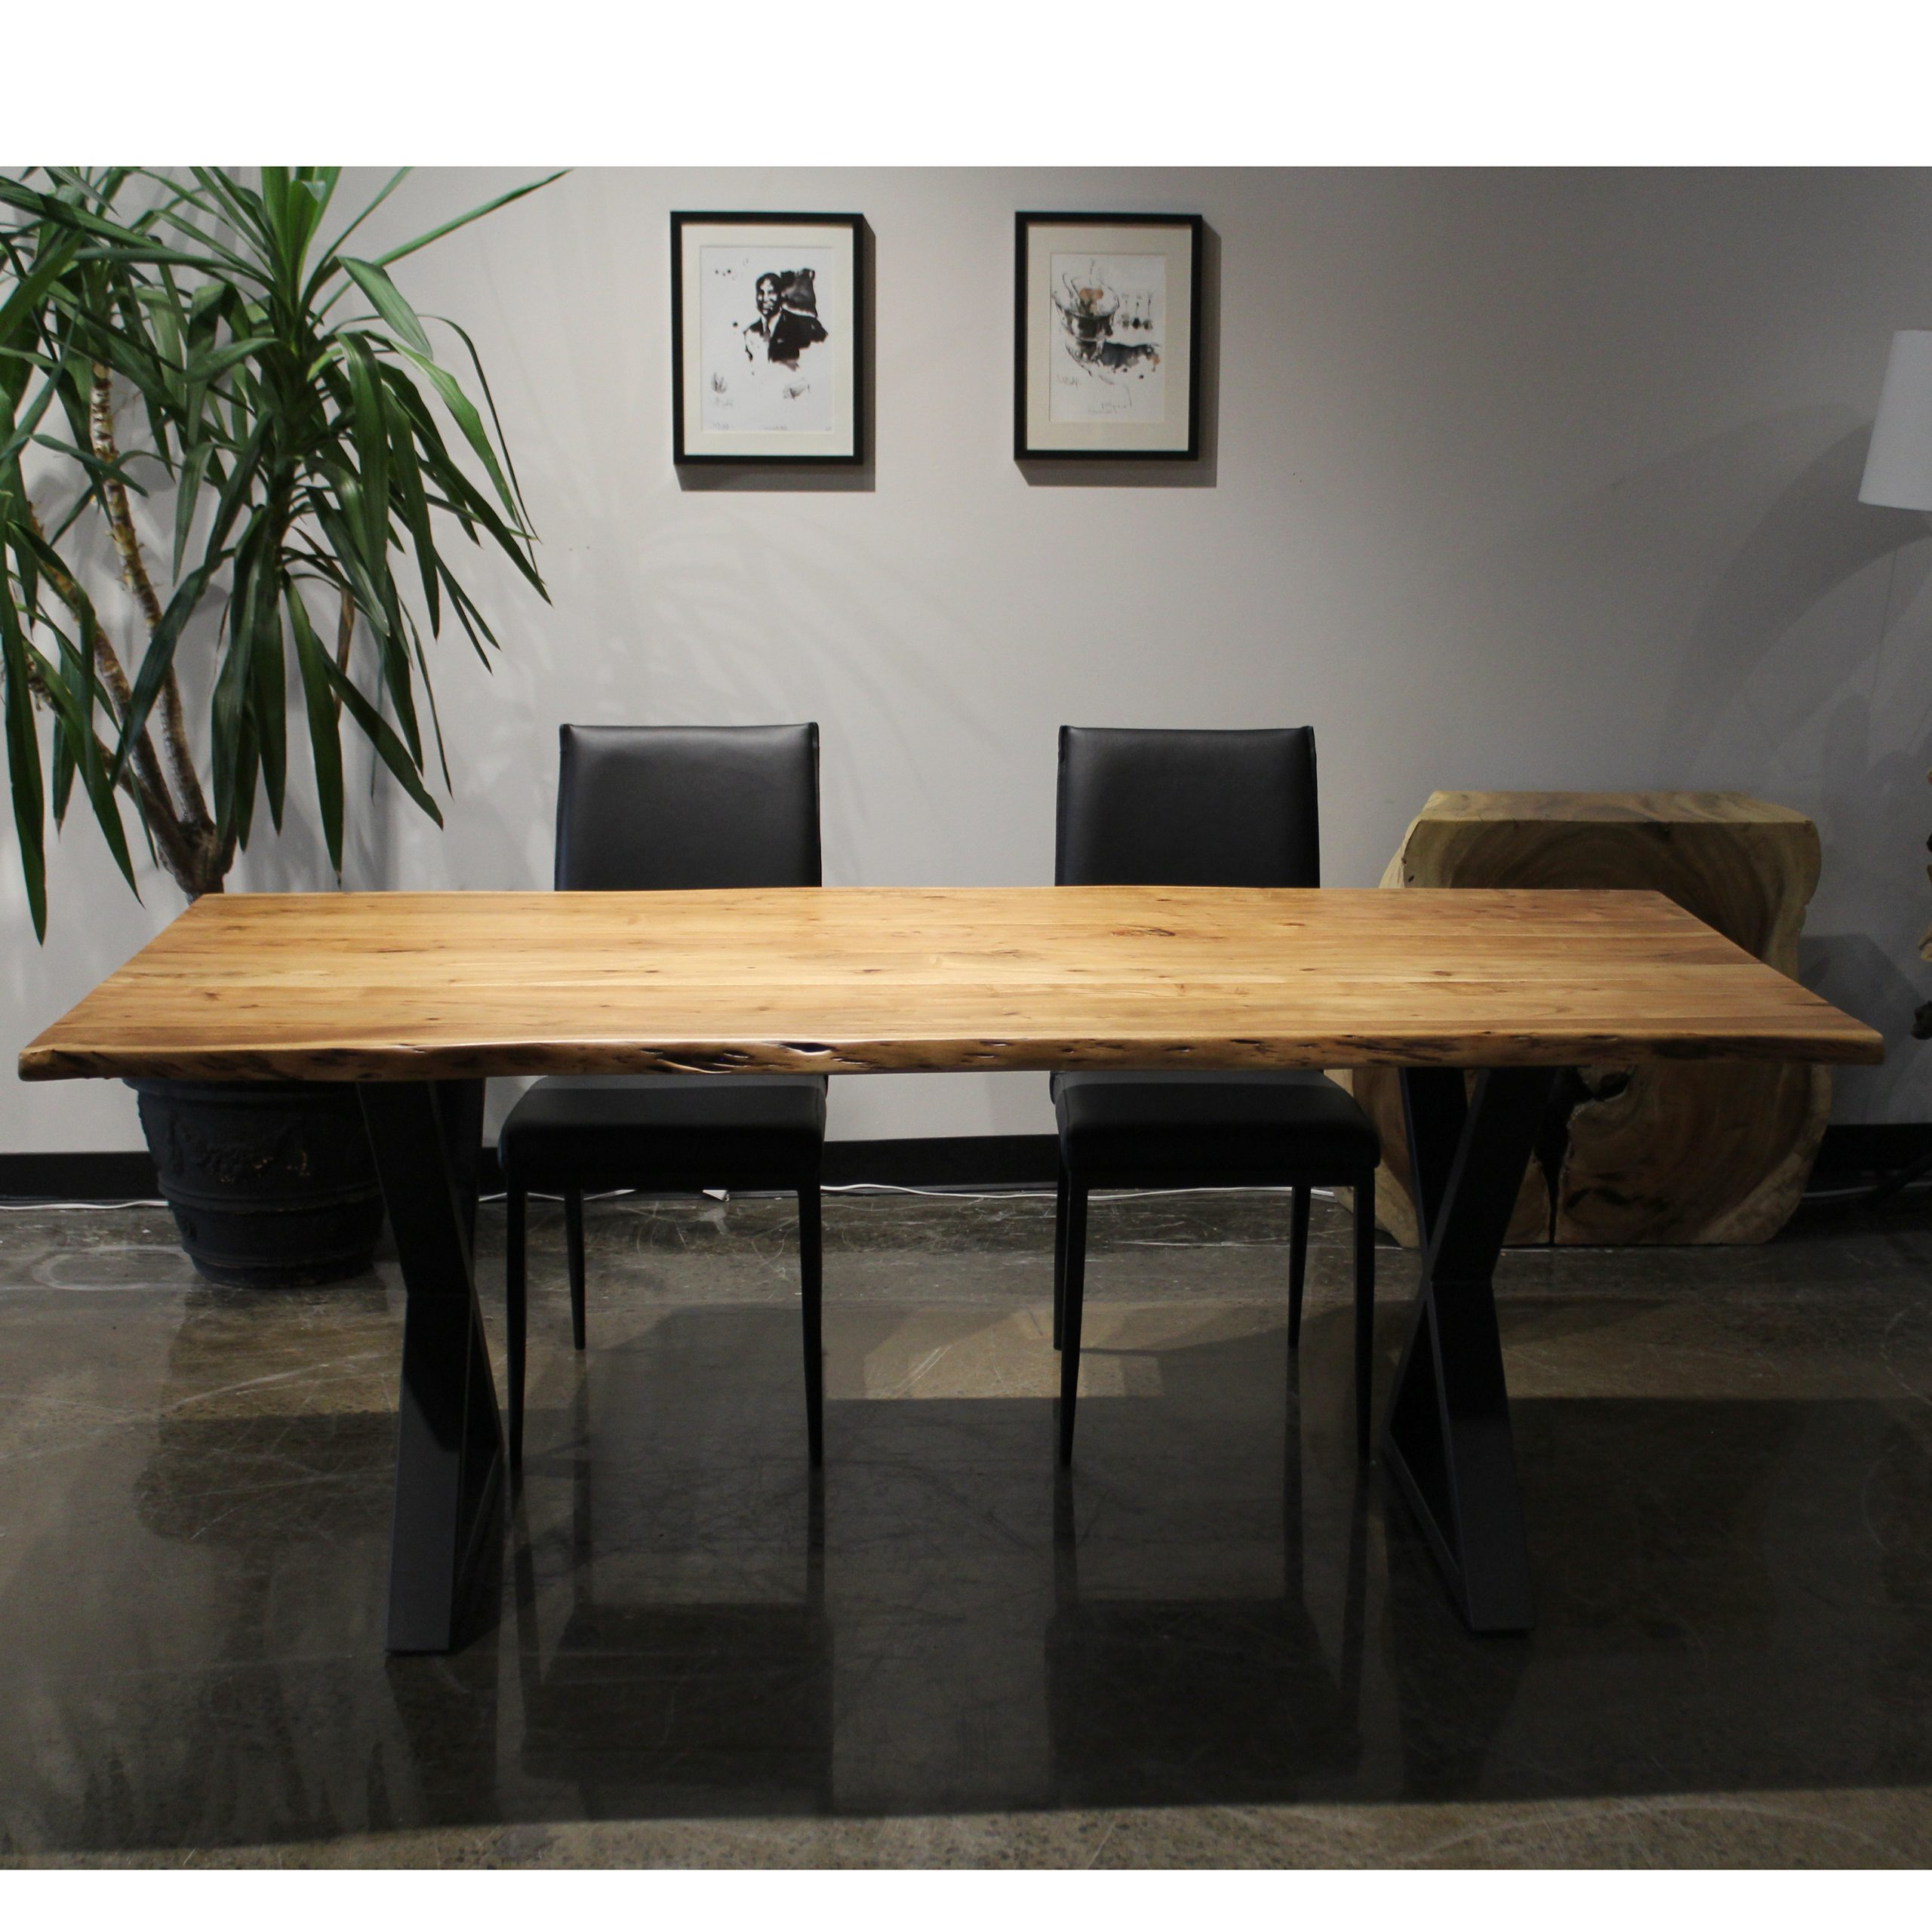 Corcoran Walnut Acacia Dining Table – 80 In – Black Metal U Legs Within Preferred Acacia Dining Tables With Black Rocket Legs (View 13 of 25)